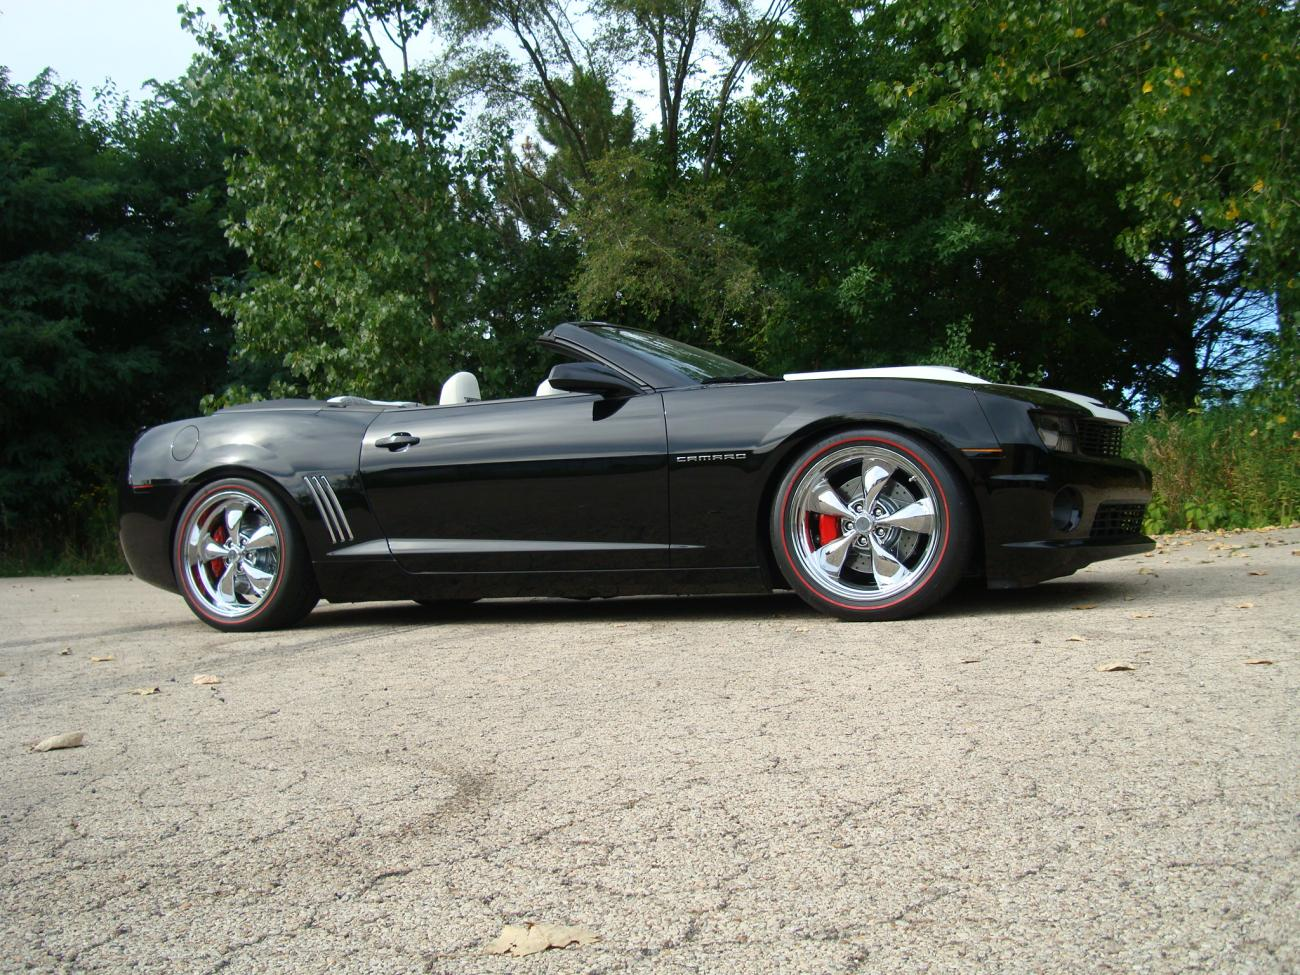 What Is The Best Tune Out There For A Mustang >> Torque thrust wheels on a Camaro? - Camaro5 Chevy Camaro Forum / Camaro ZL1, SS and V6 Forums ...